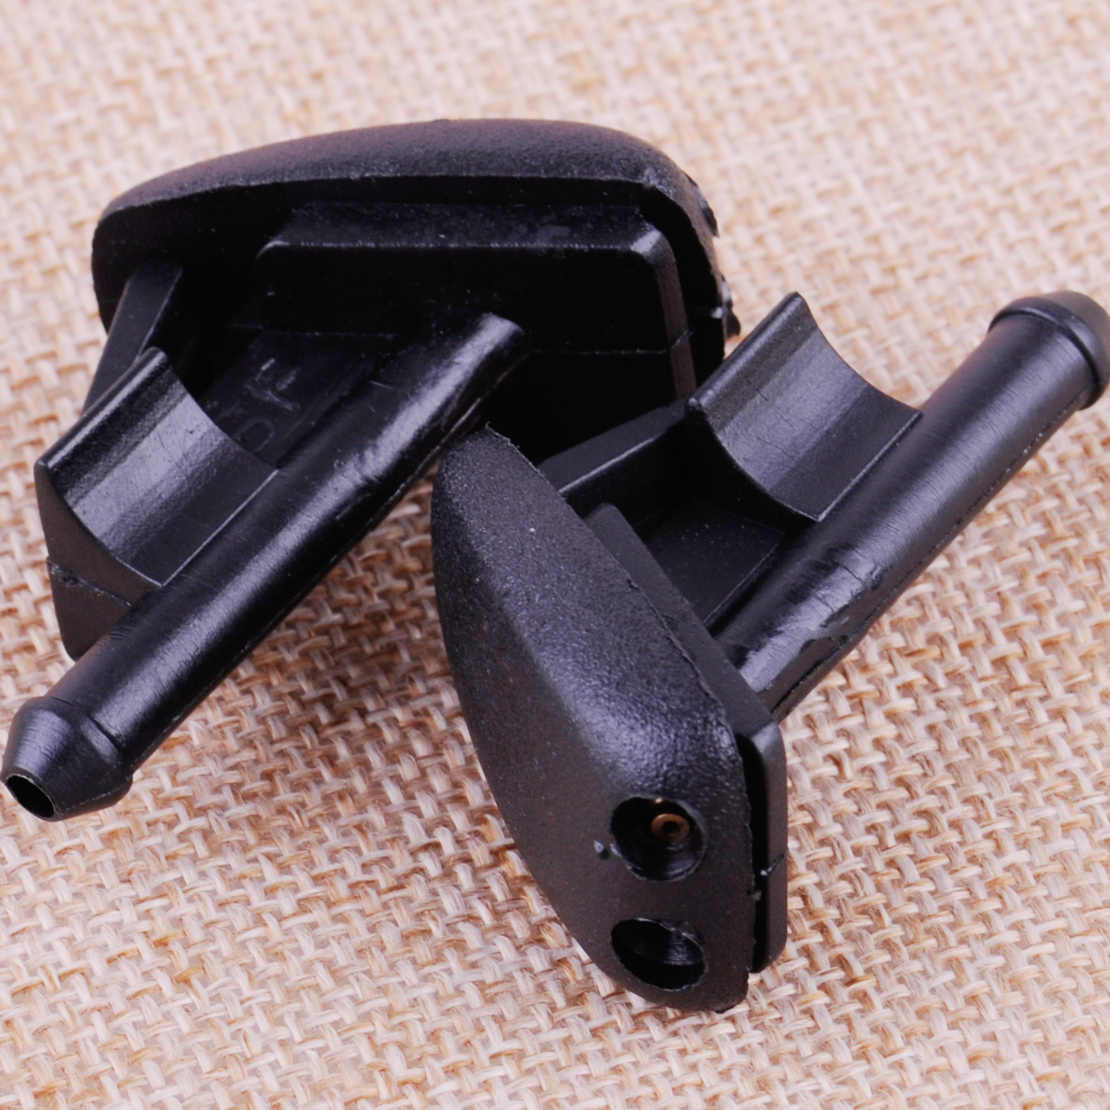 Wipers 2Pcs Car Left Windshield Washer Spray Nozzle 61601384859 Fit for BMW E36 Z3 318I 318Is 325I 325Is 328I M3 Non-Heated